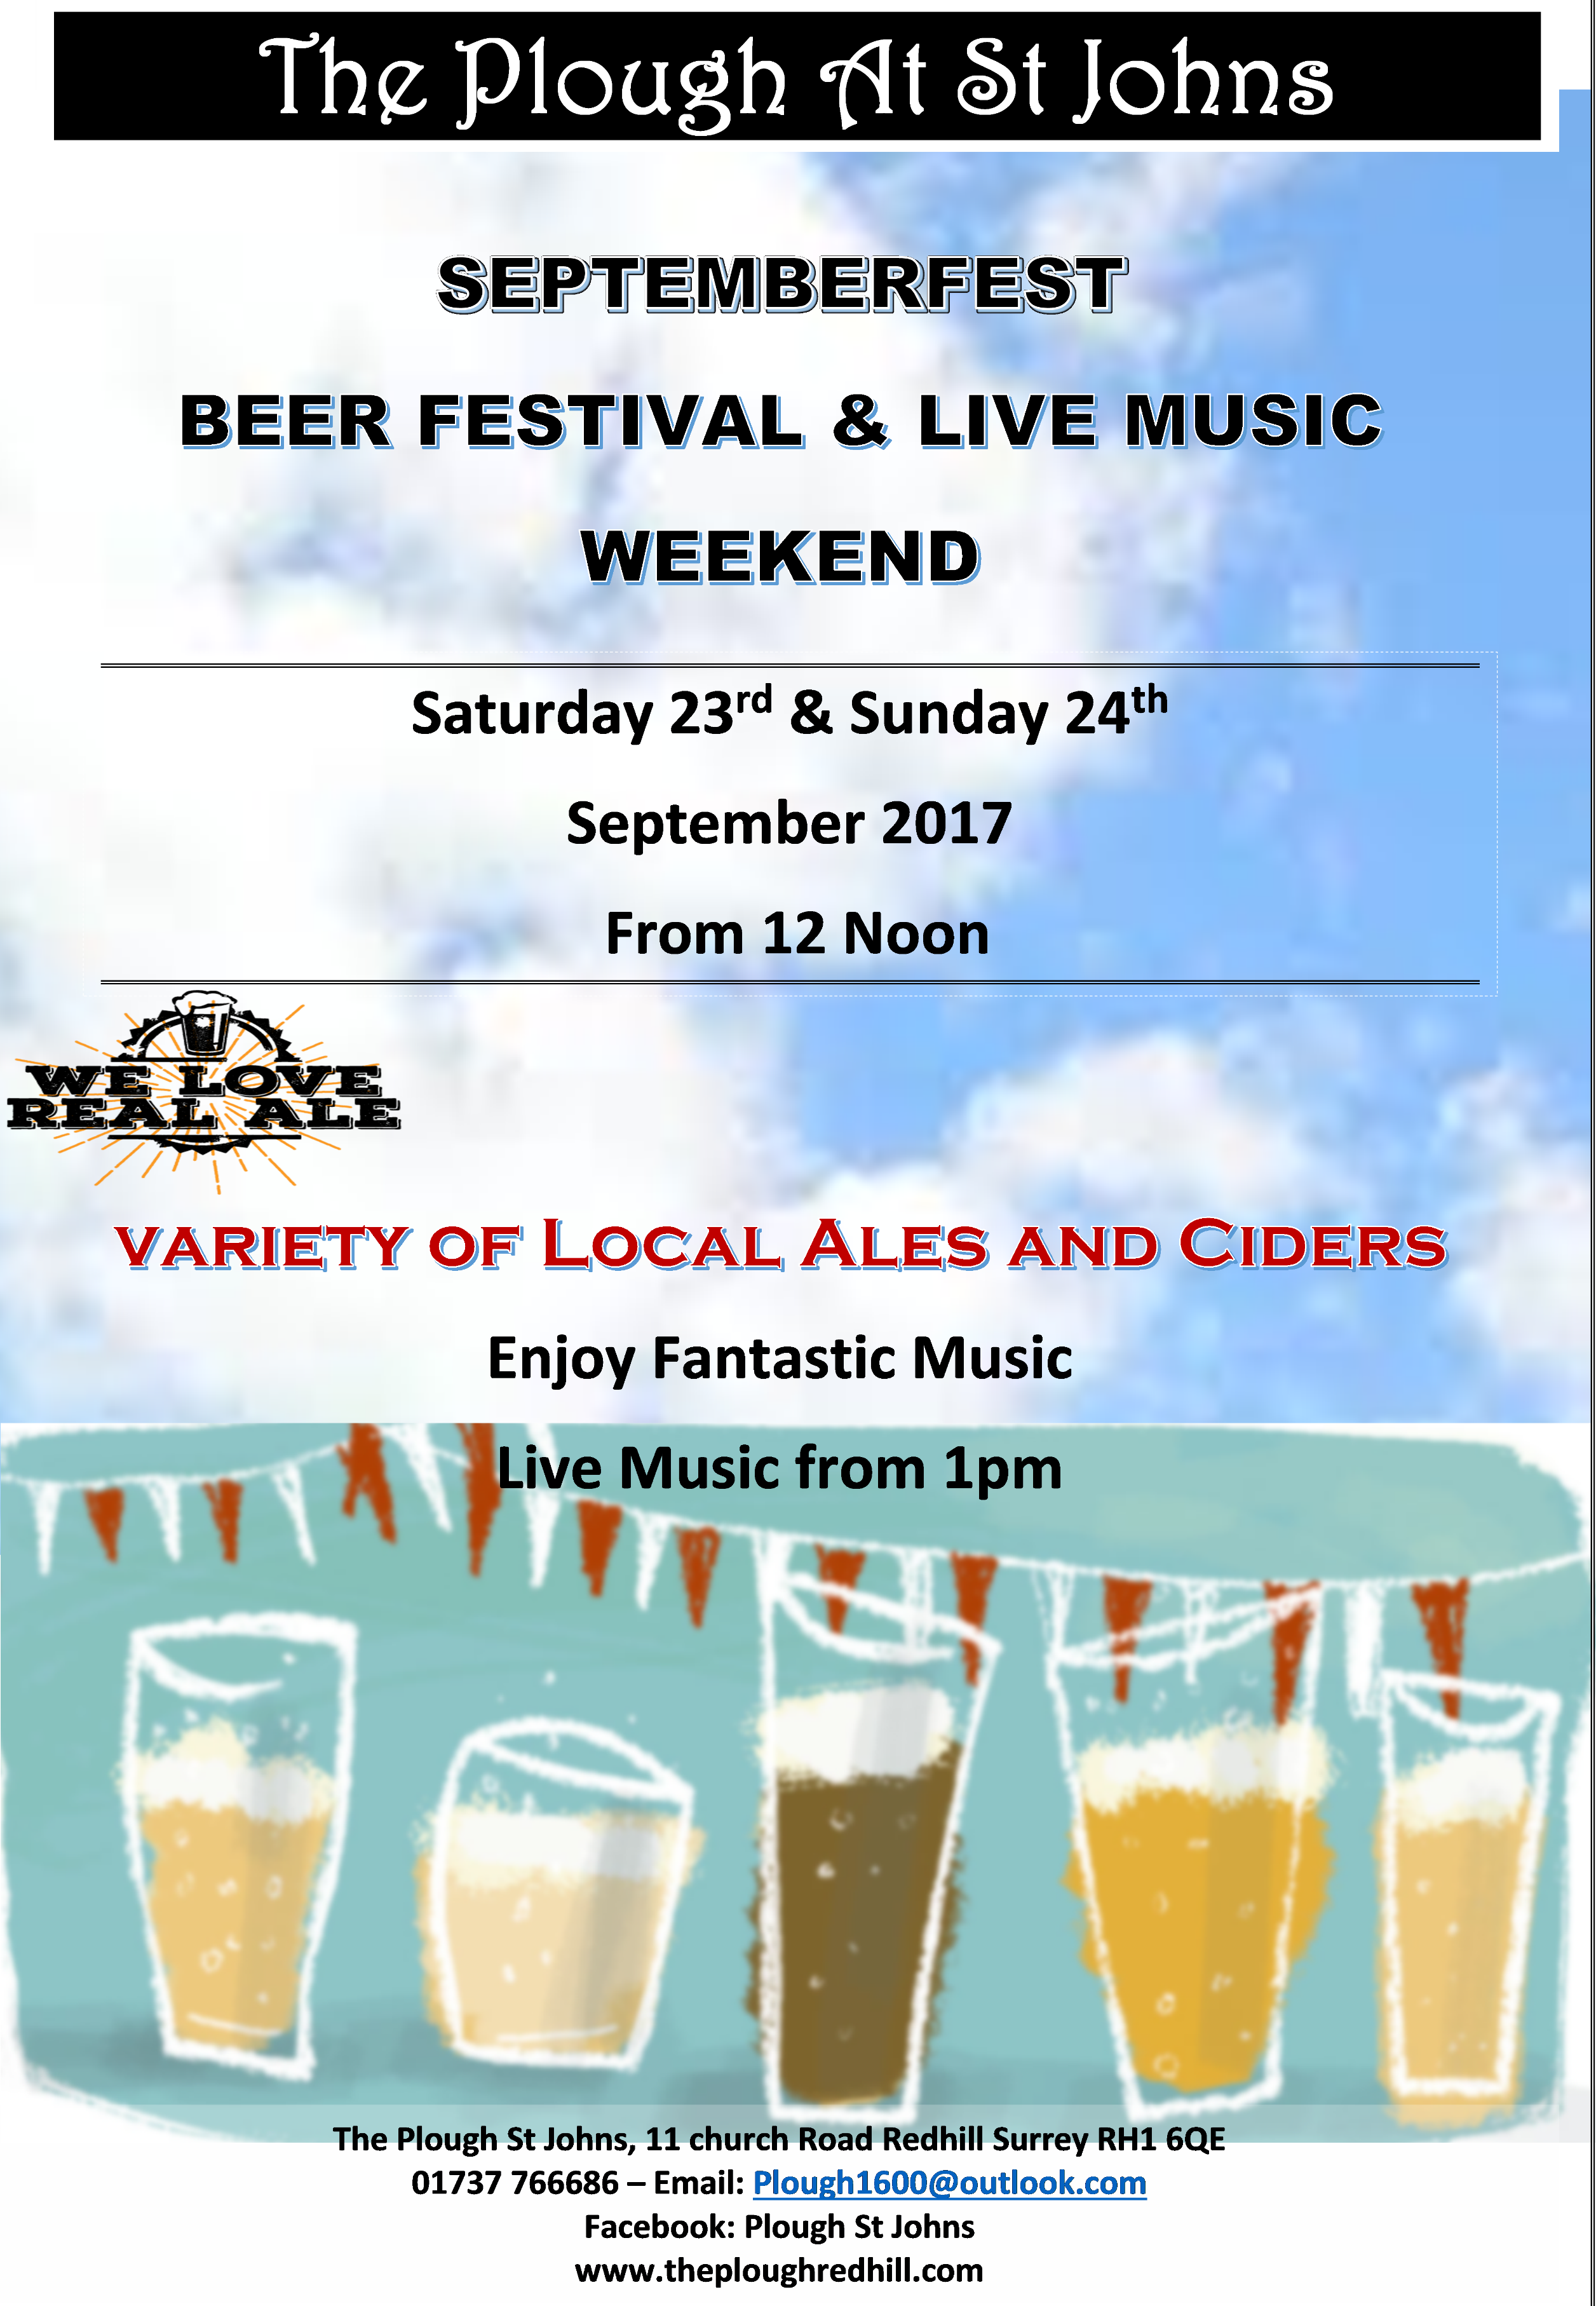 Events at the Plough